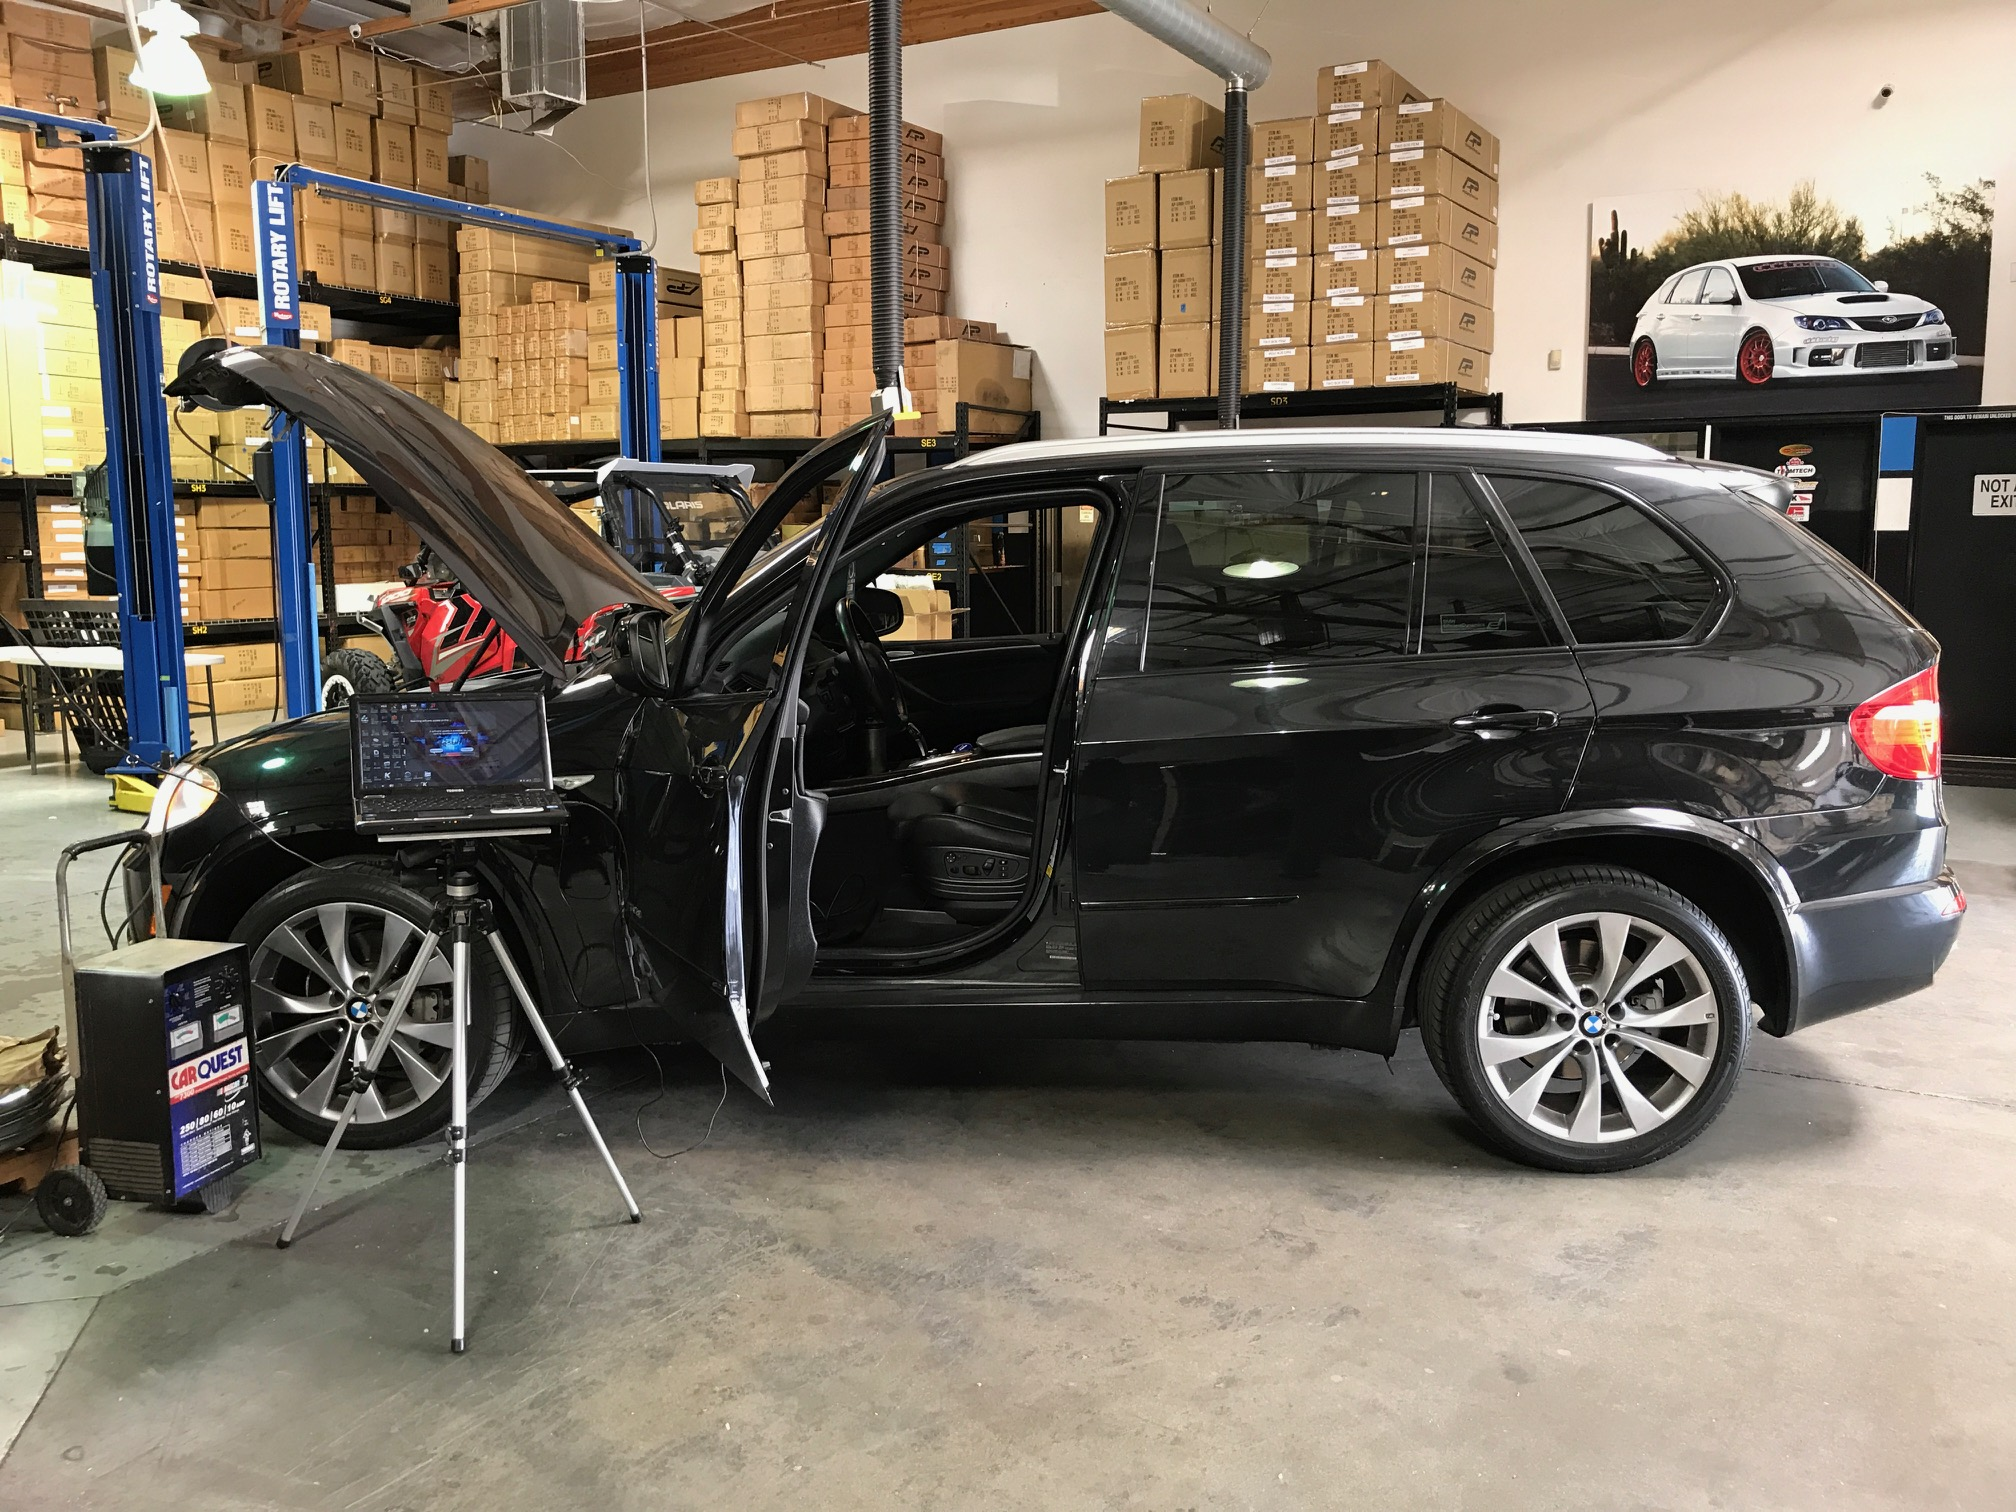 james-bmw-x5-48-tune-2